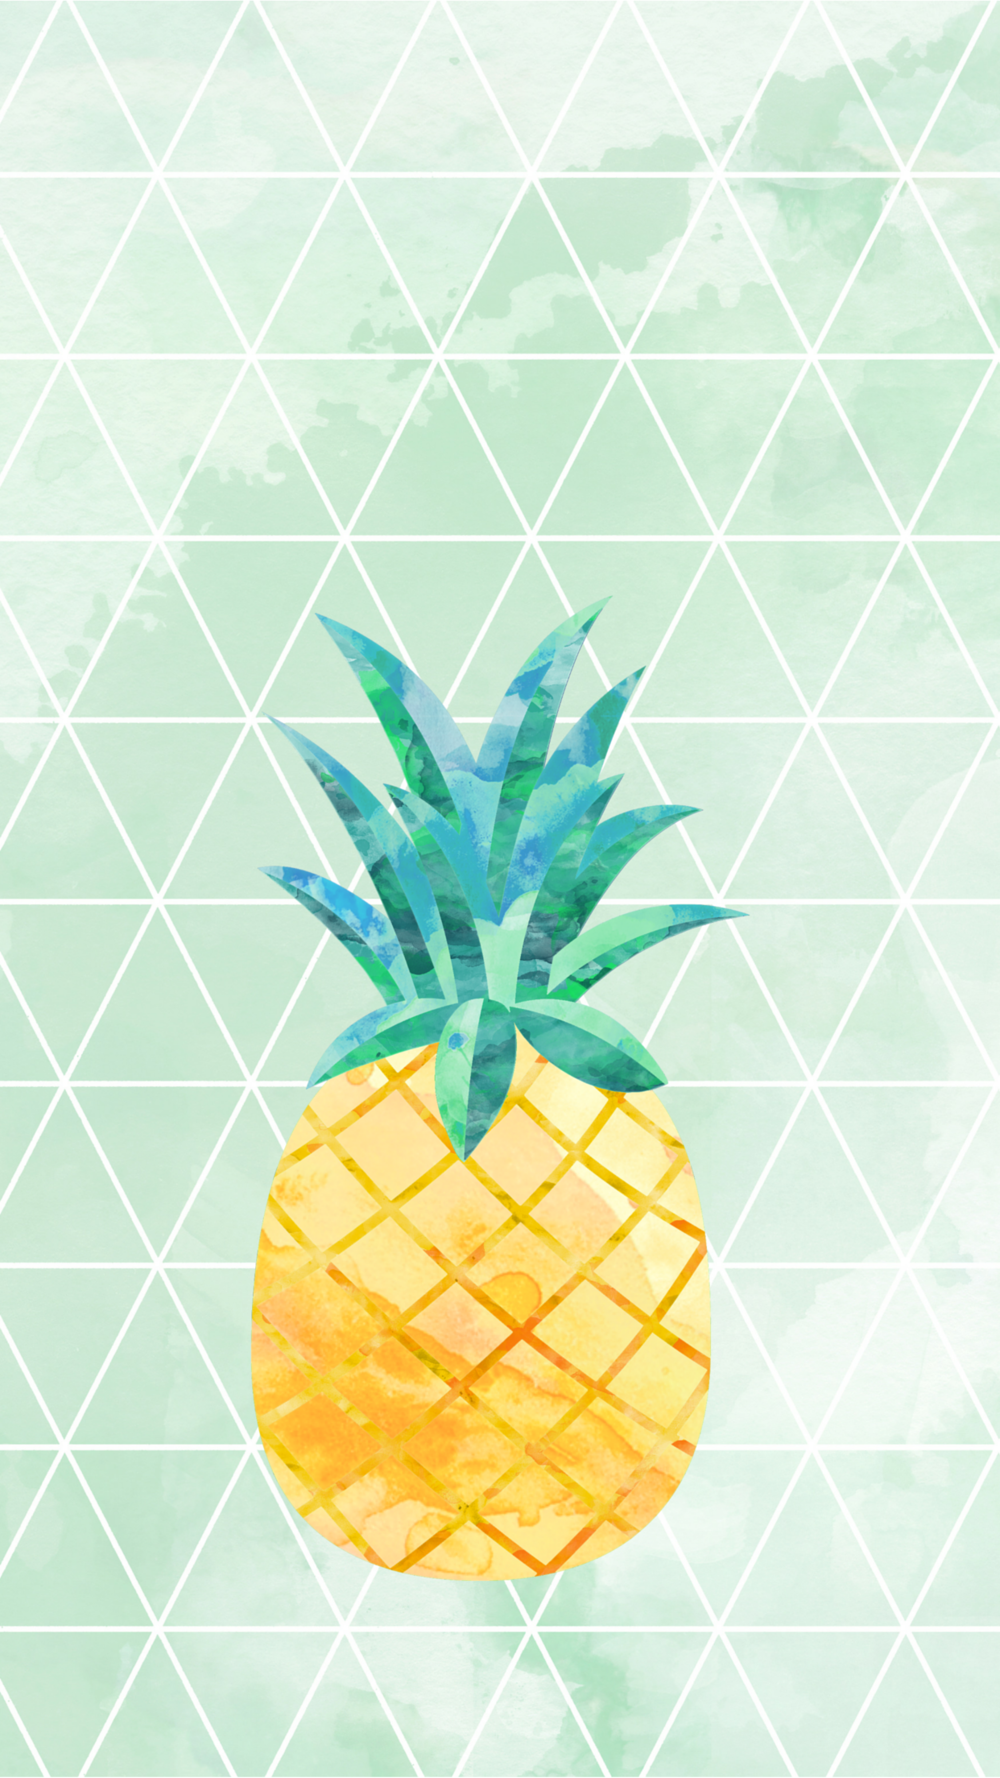 ... Weu0027ve Created A Way To Take Summer With You All Season Long. These  Freebie IPhone Wallpapers Are Bright, Shiny, And Bring On The Fun. Enjoy!